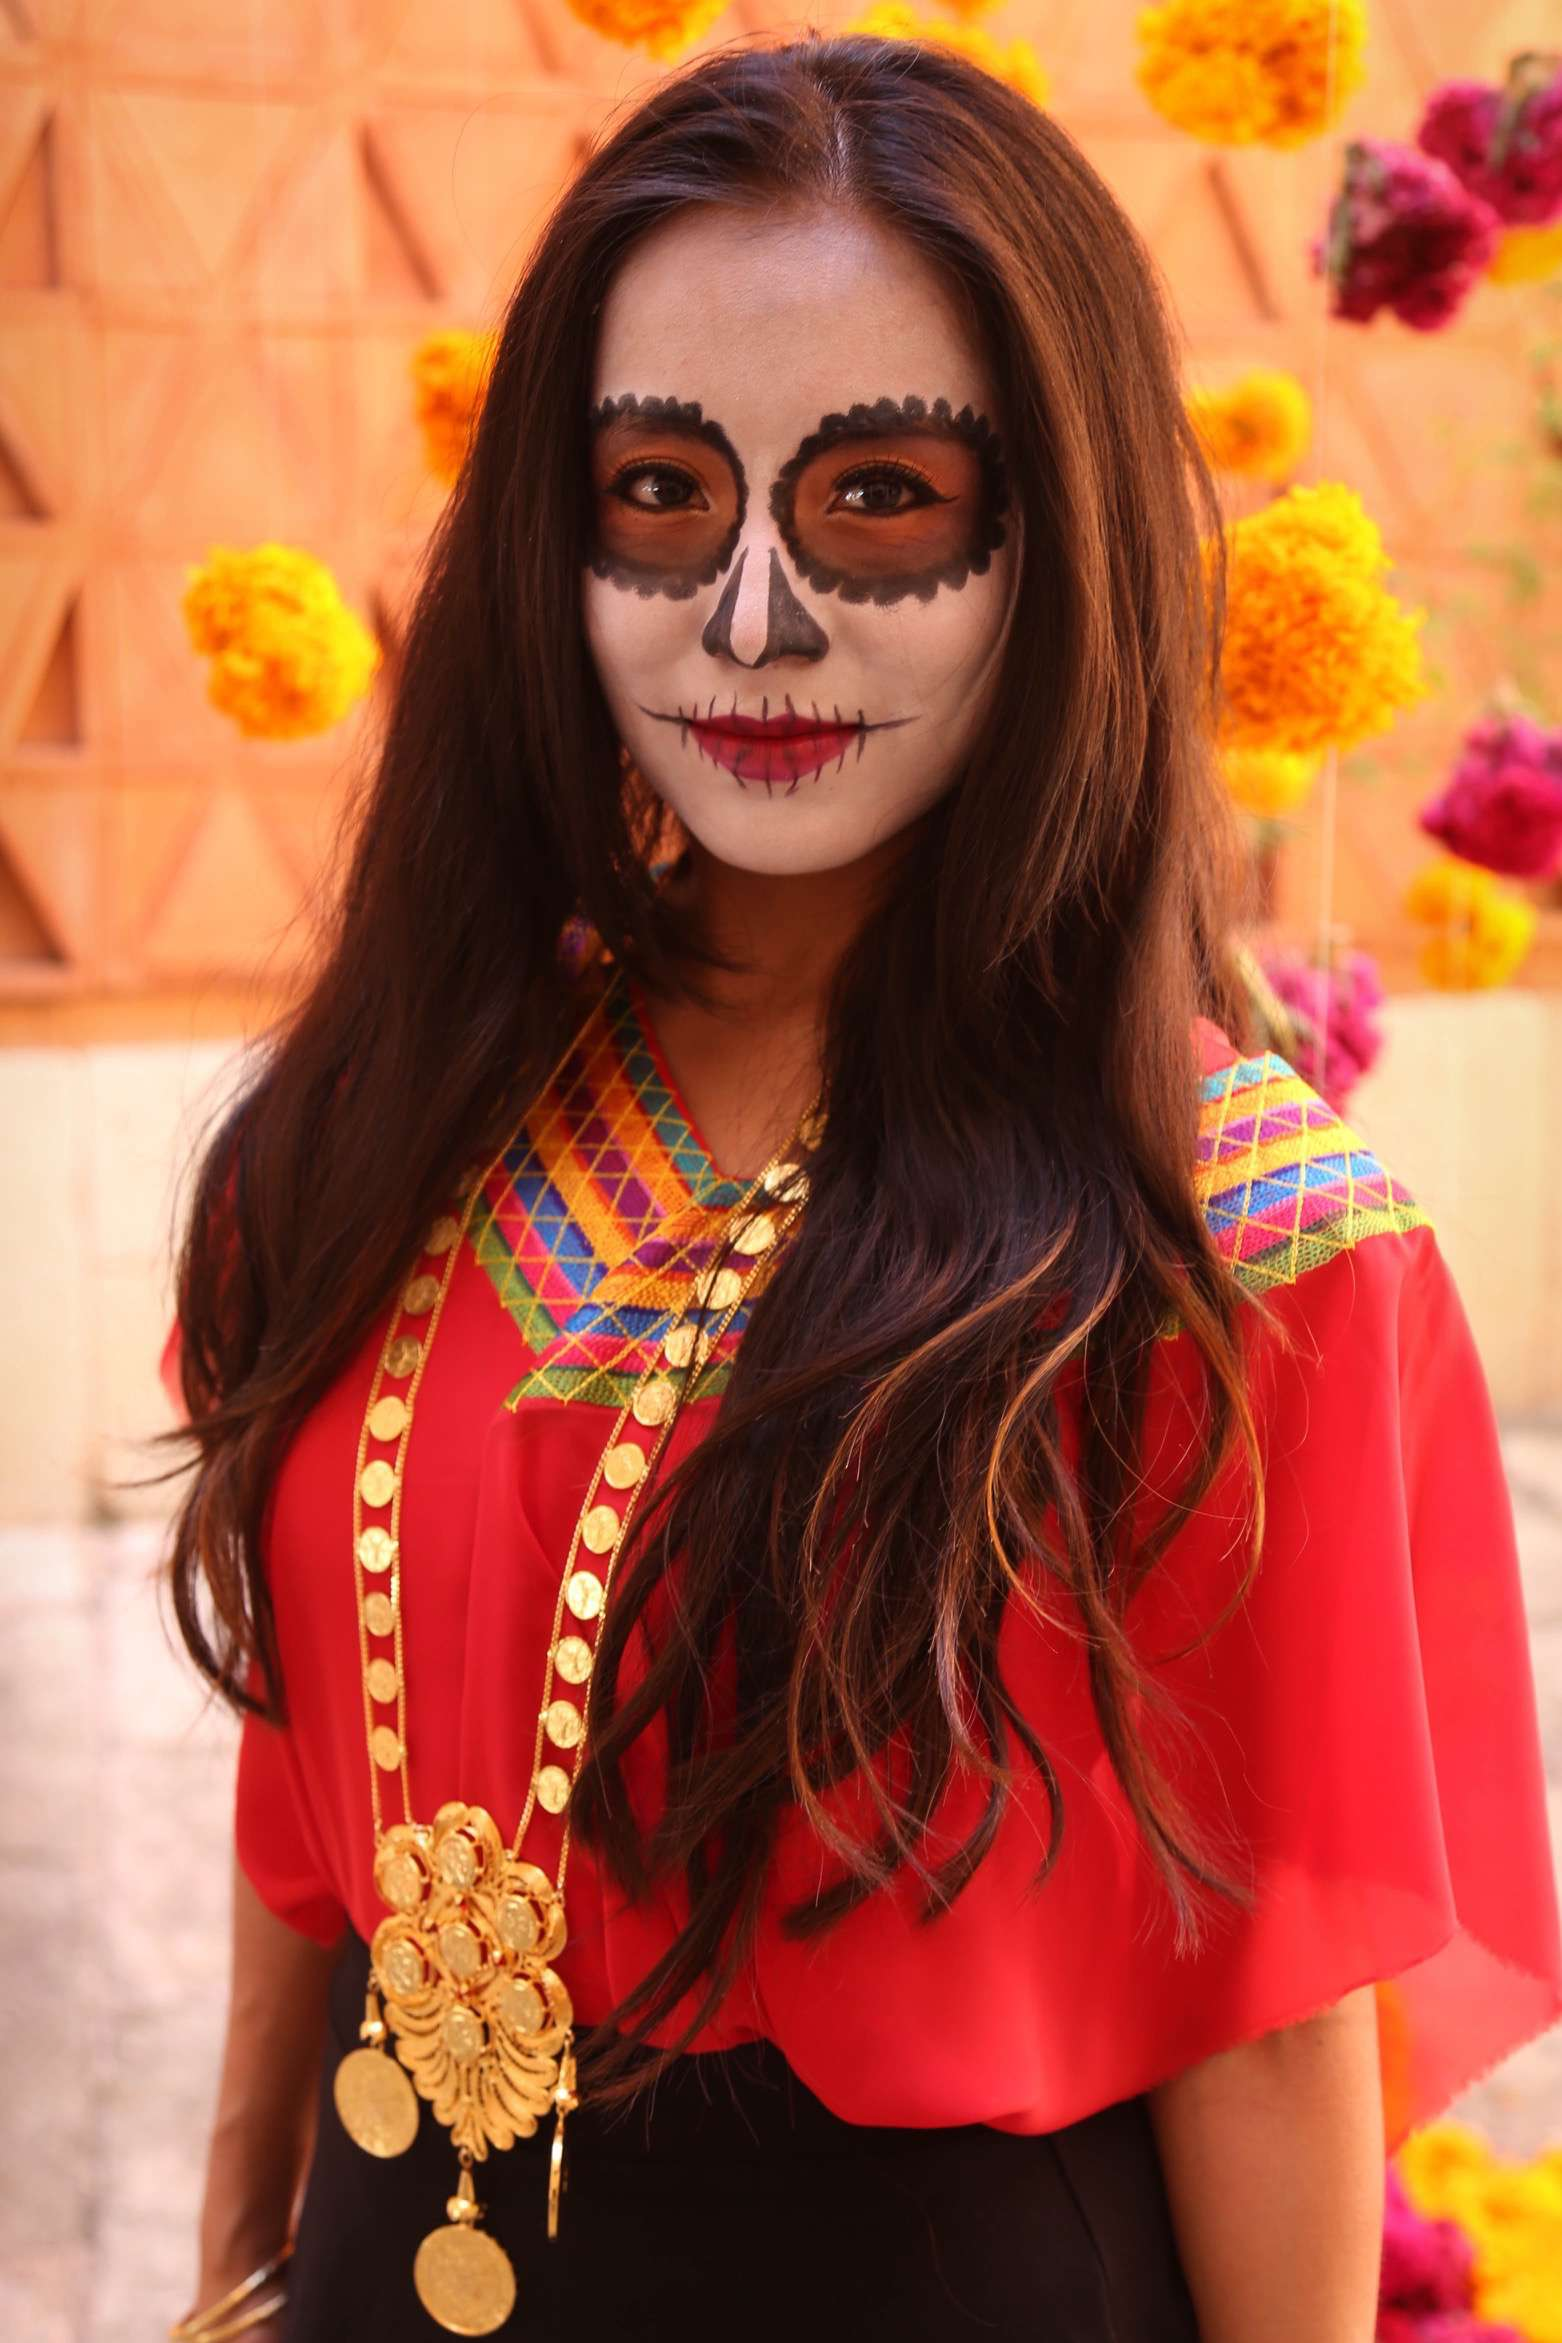 Part of the fun during Dia de los Muertos is to get your face painted.